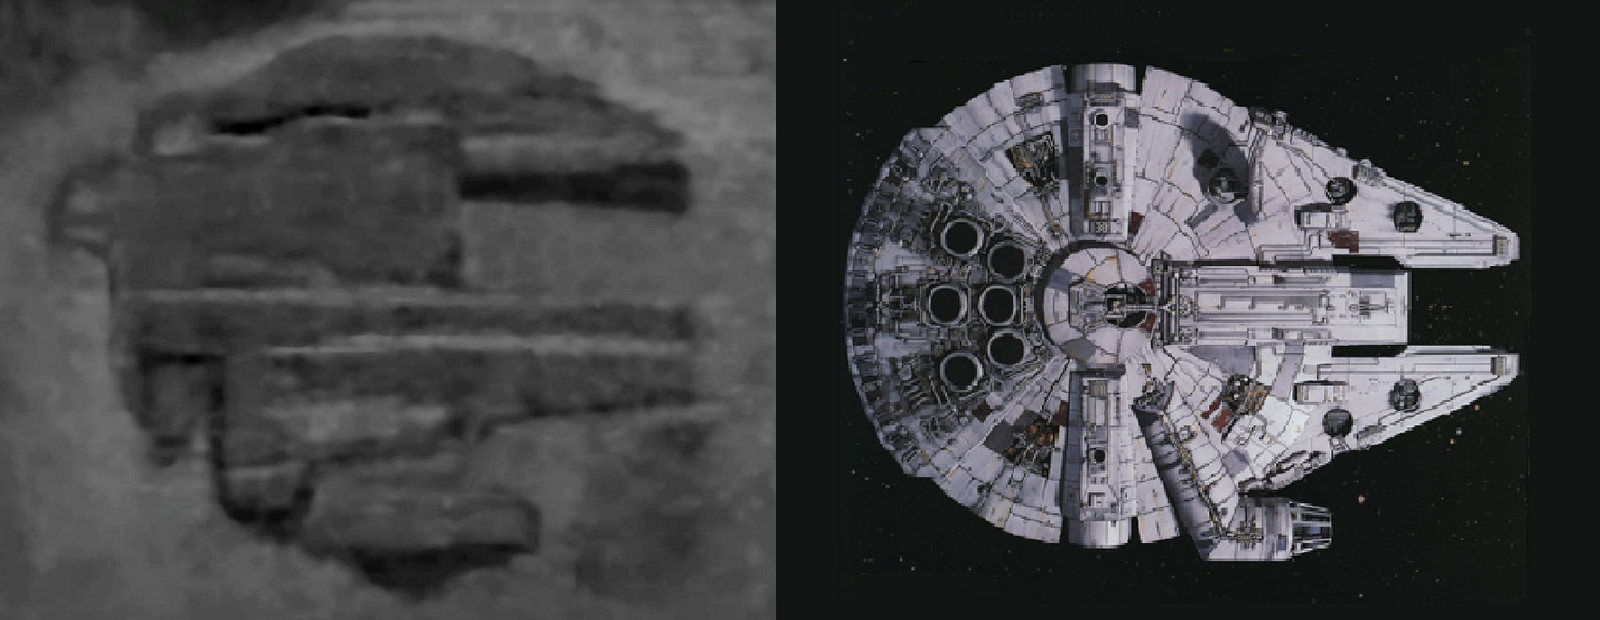 Baltic Sea Rock Anomaly Looks Like the Millennium Falcon